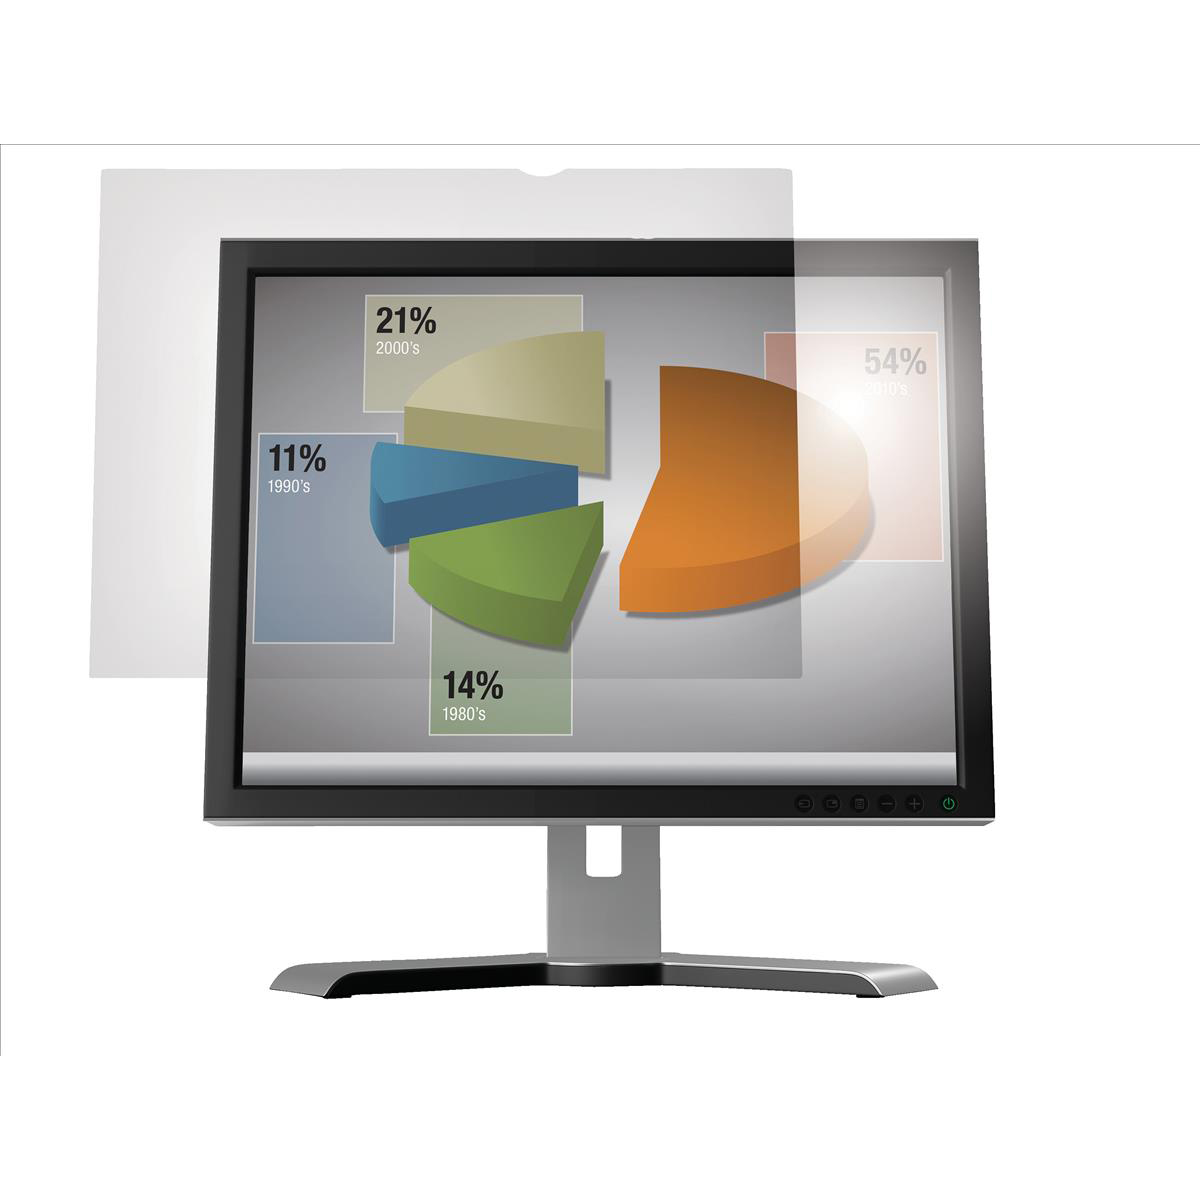 Image for 3M Anti-glare Filter 21.5in Widescreen 16:9 for LCD Monitor Ref AG21.5W9